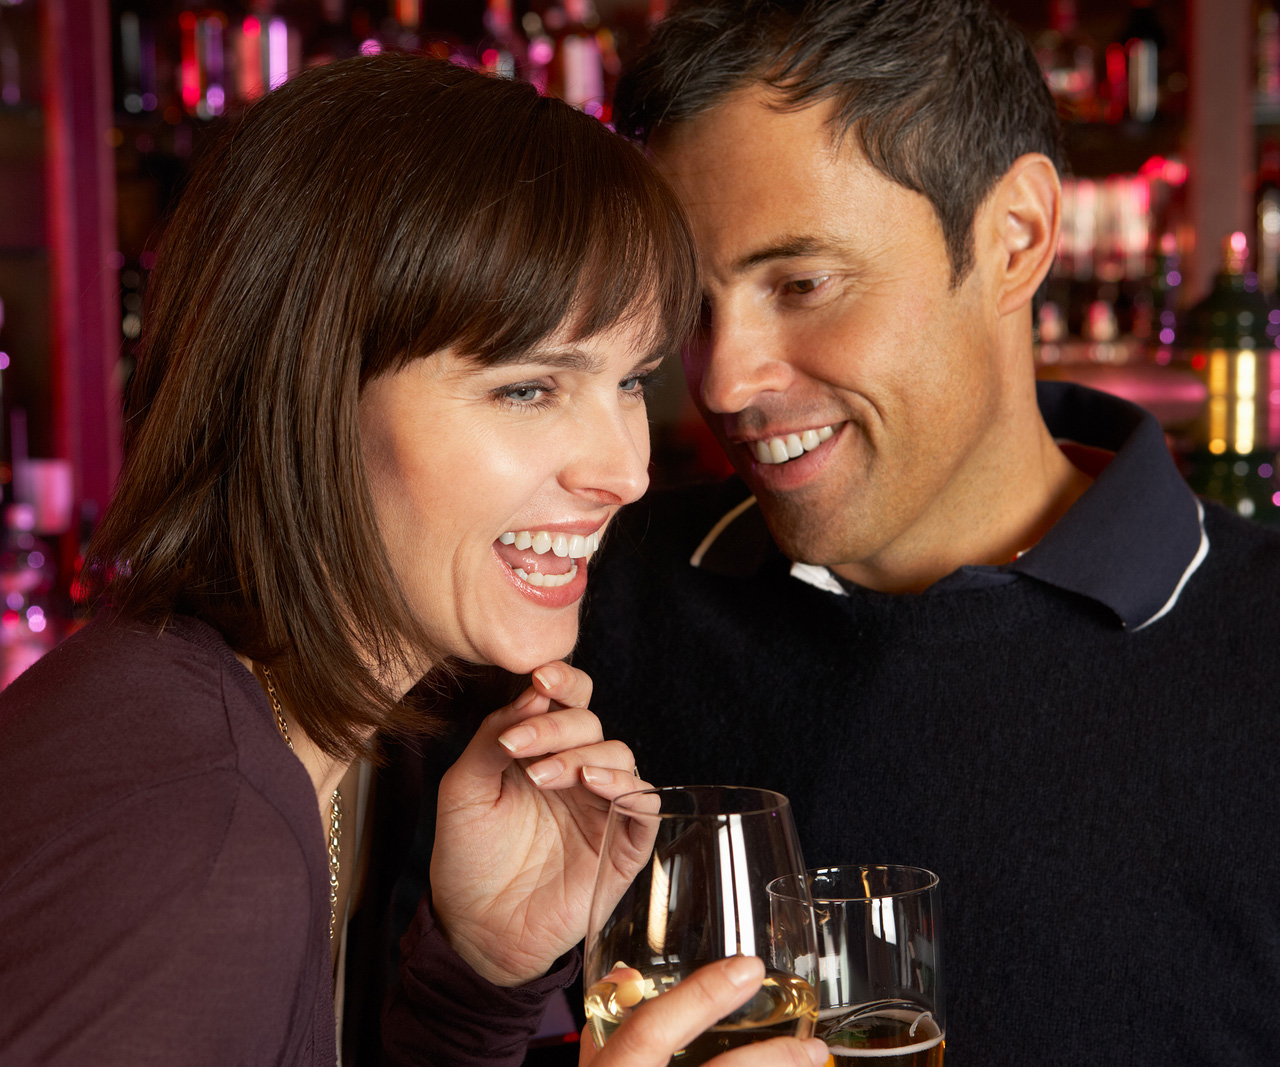 speed dating adelaide south australia Find meetups in adelaide about singles over 50 and meet people in your local community who share your interests.